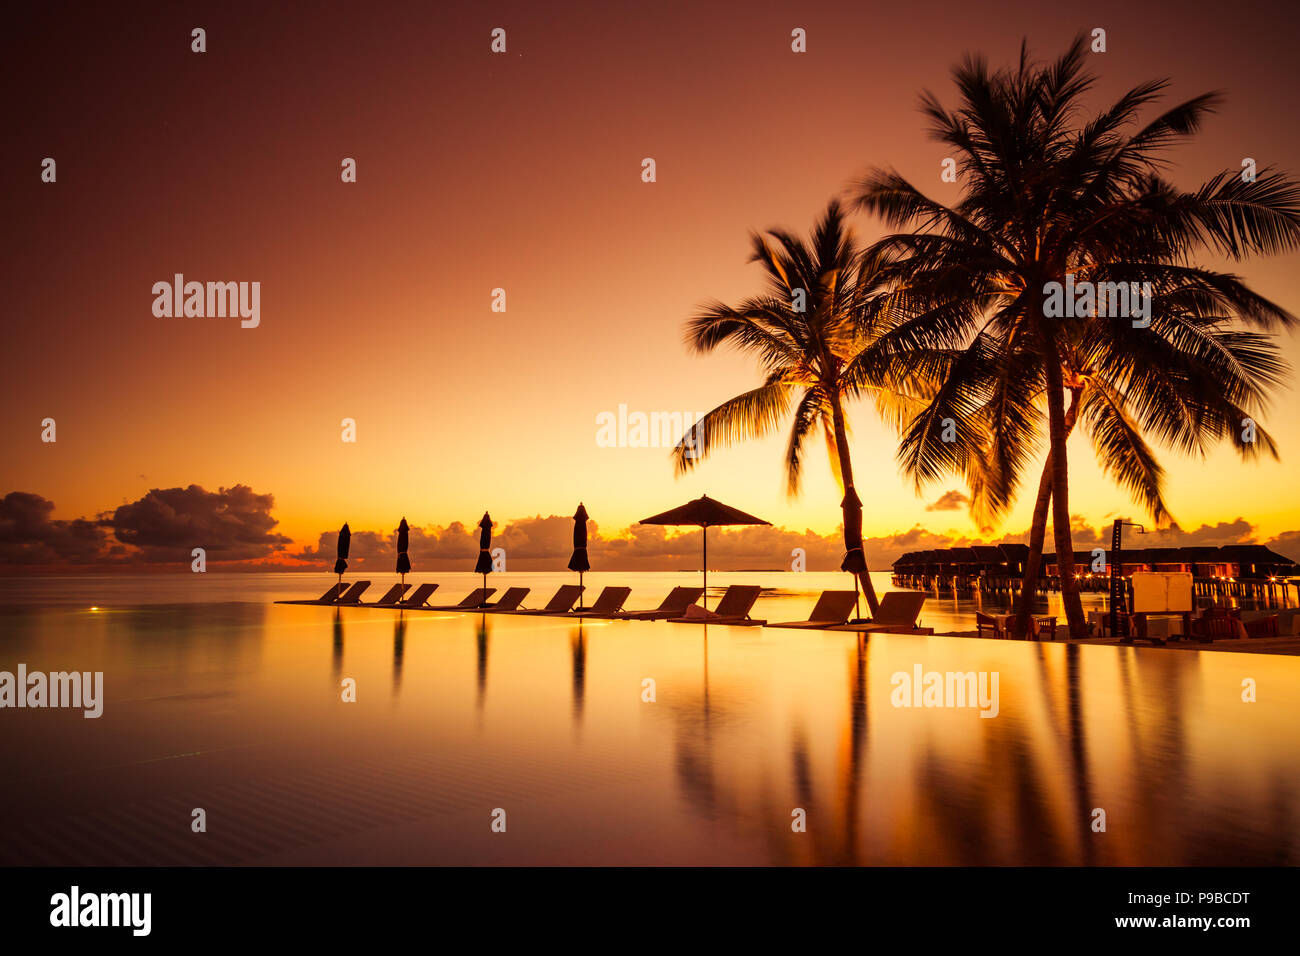 Luxury swimming pool in beautiful sunset. Luxury summer vacation and holiday concept and design. Tropical poolside travel design - Stock Image